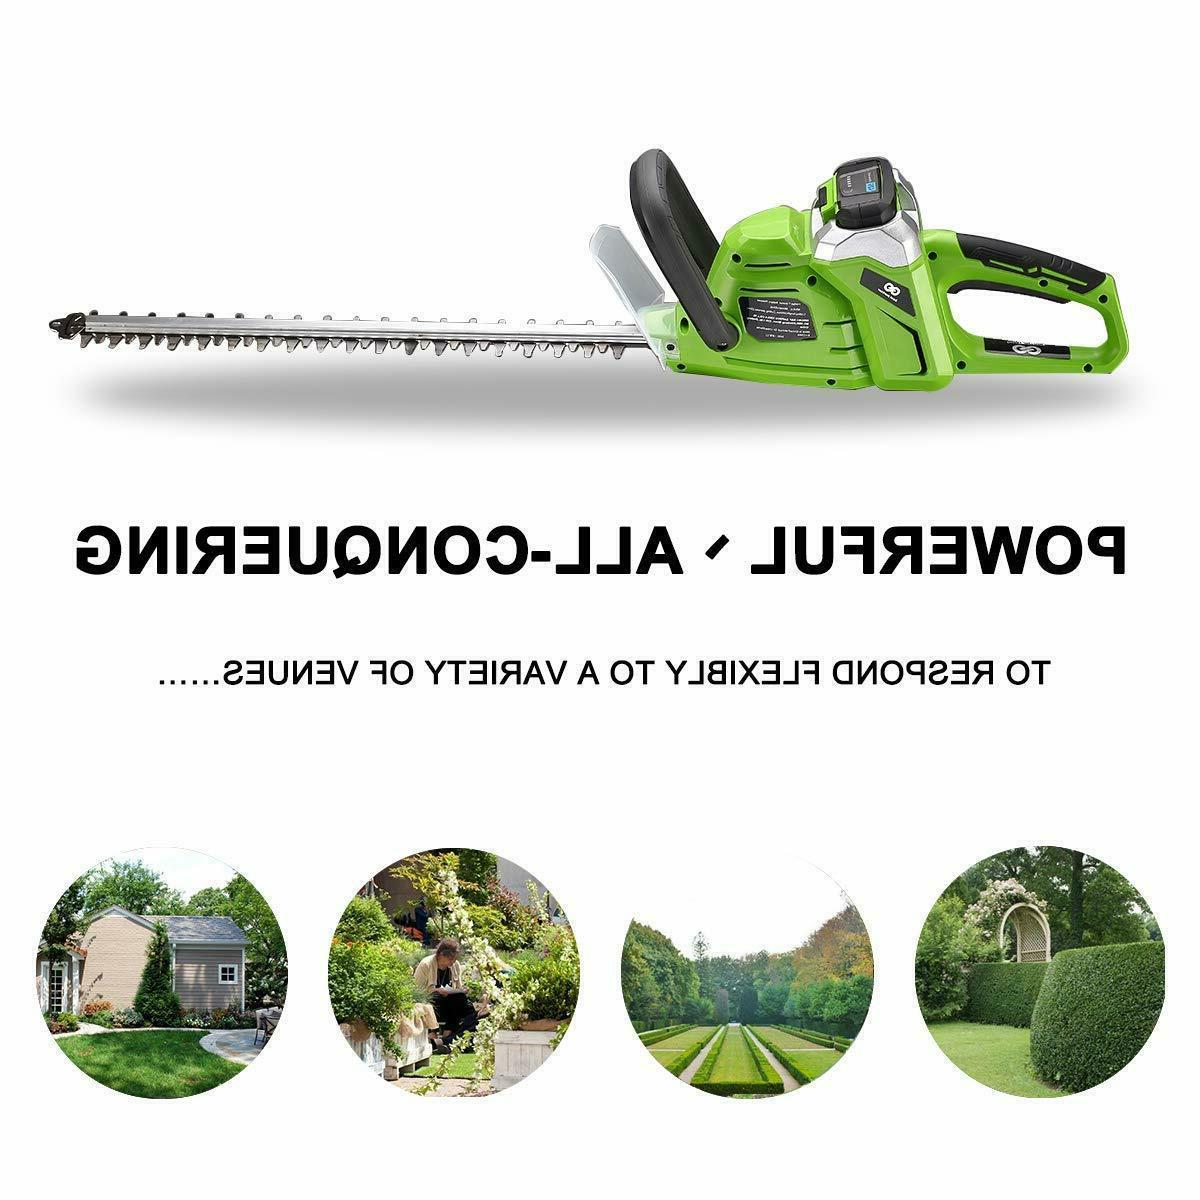 40 volt max high performance cordless hedge